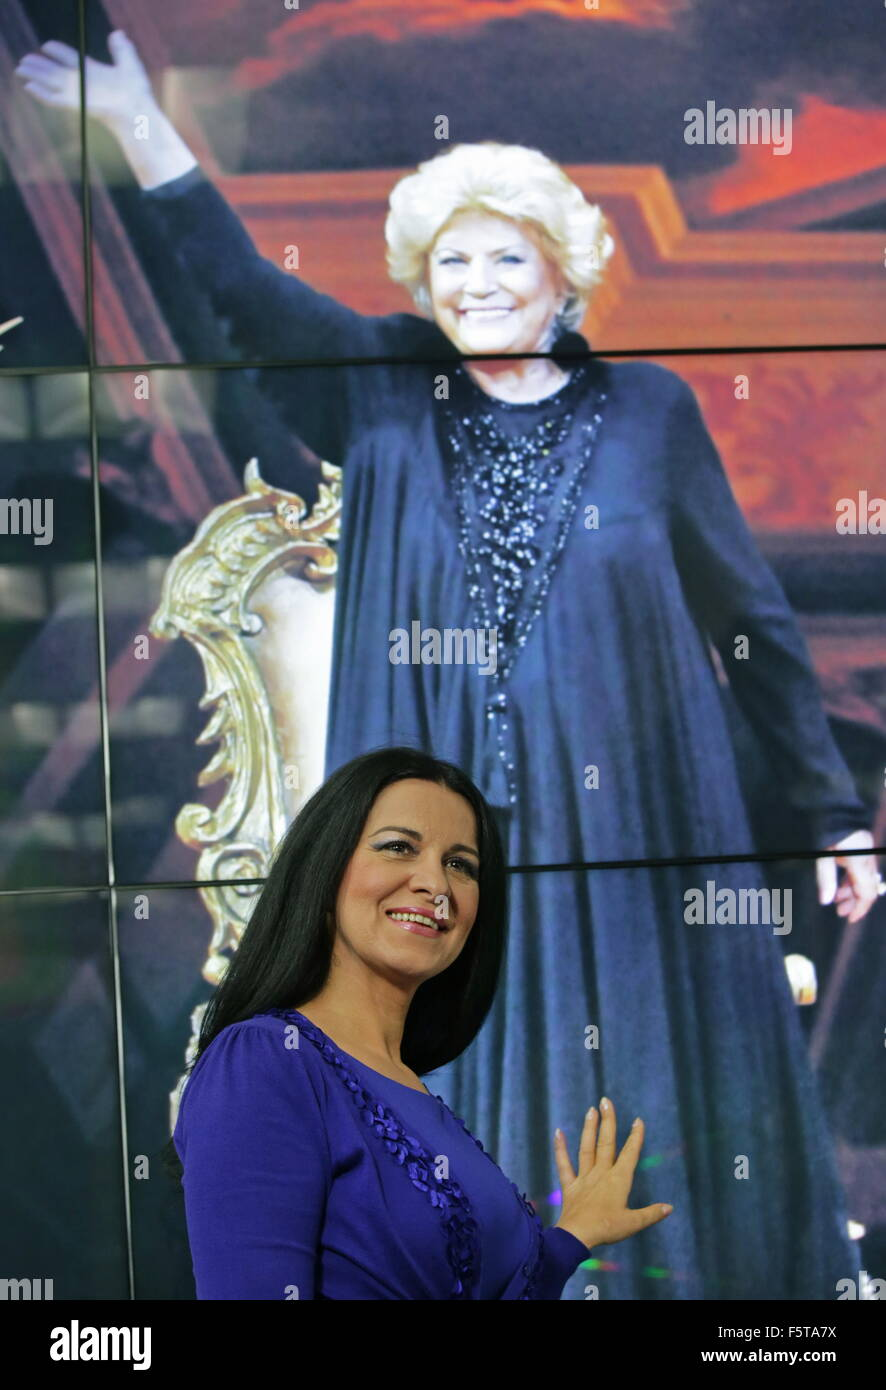 MOSCOW, RUSSIA. NOVEMBER 9, 2015. Romanian soprano Angela Gheorghiu attends a press conference on the Elena Obraztsova Stock Photo